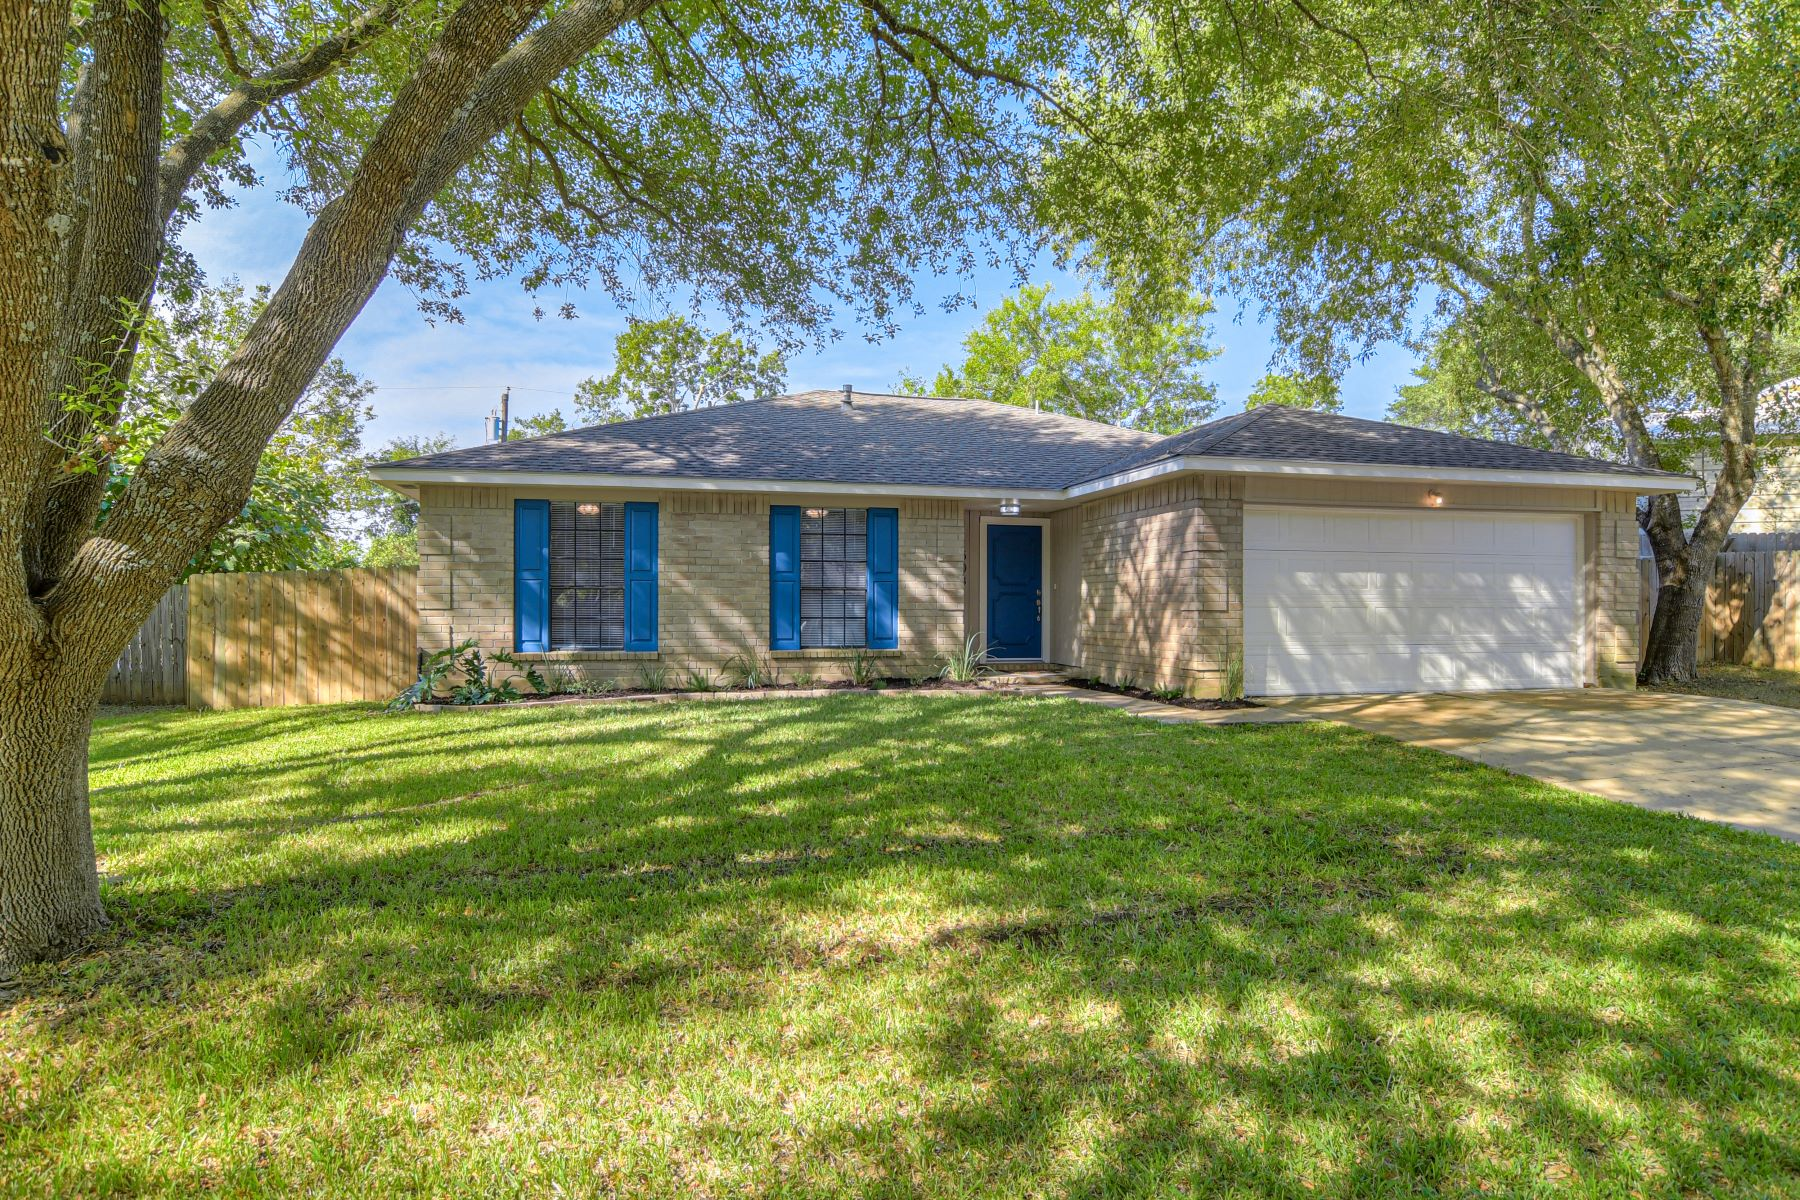 Single Family Homes for Sale at 1503 Pigeon Forge Road, Pflugerville, TX 78660 1503 Pigeon Forge Road Pflugerville, Texas 78660 United States